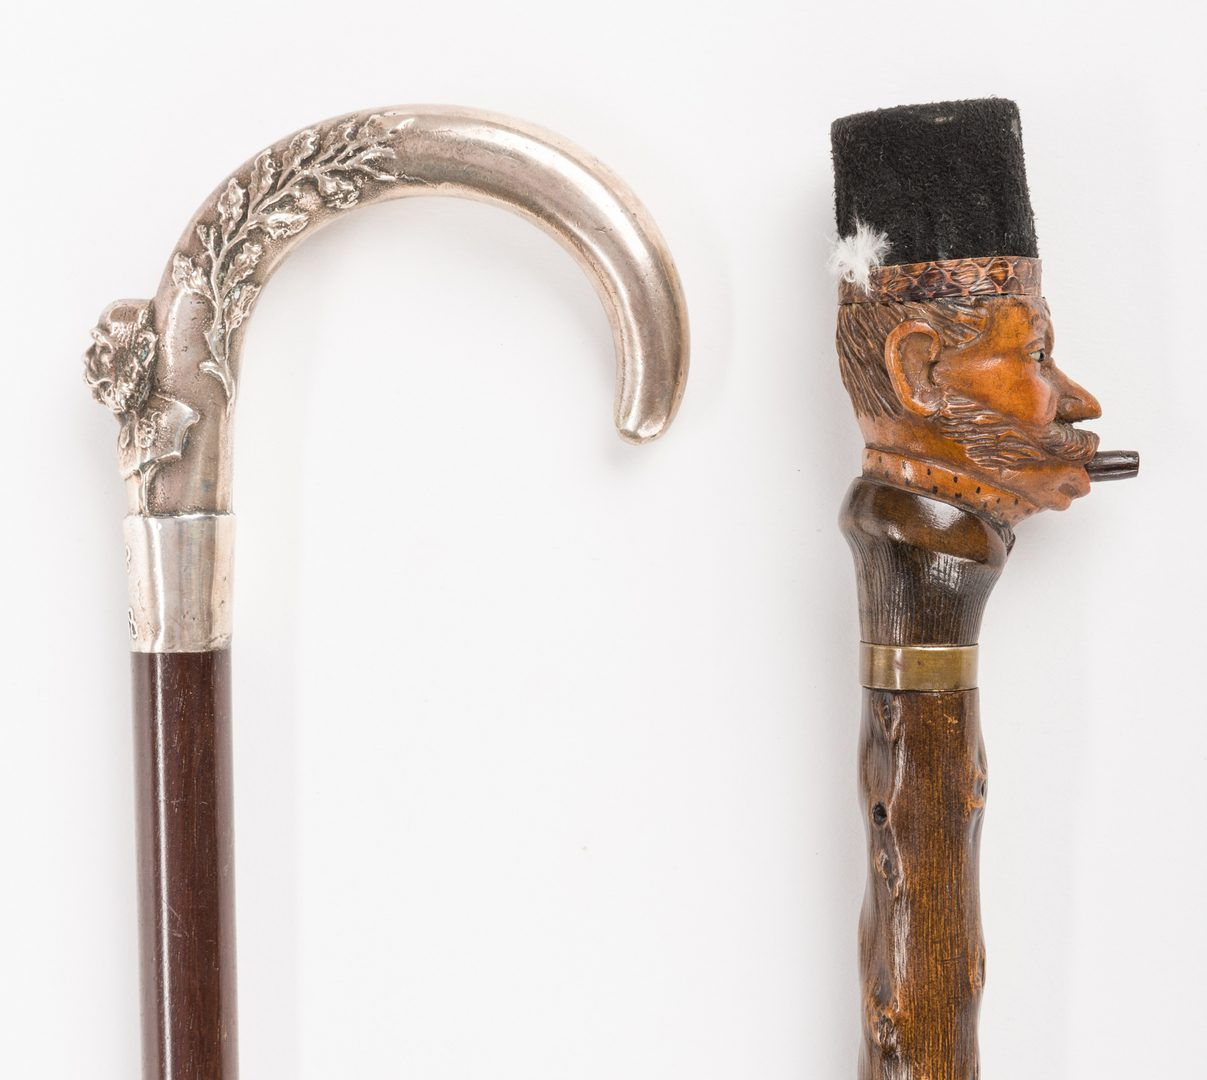 Lot 719: Silver Jubilee Cane and Mechanical Cane, 2 items